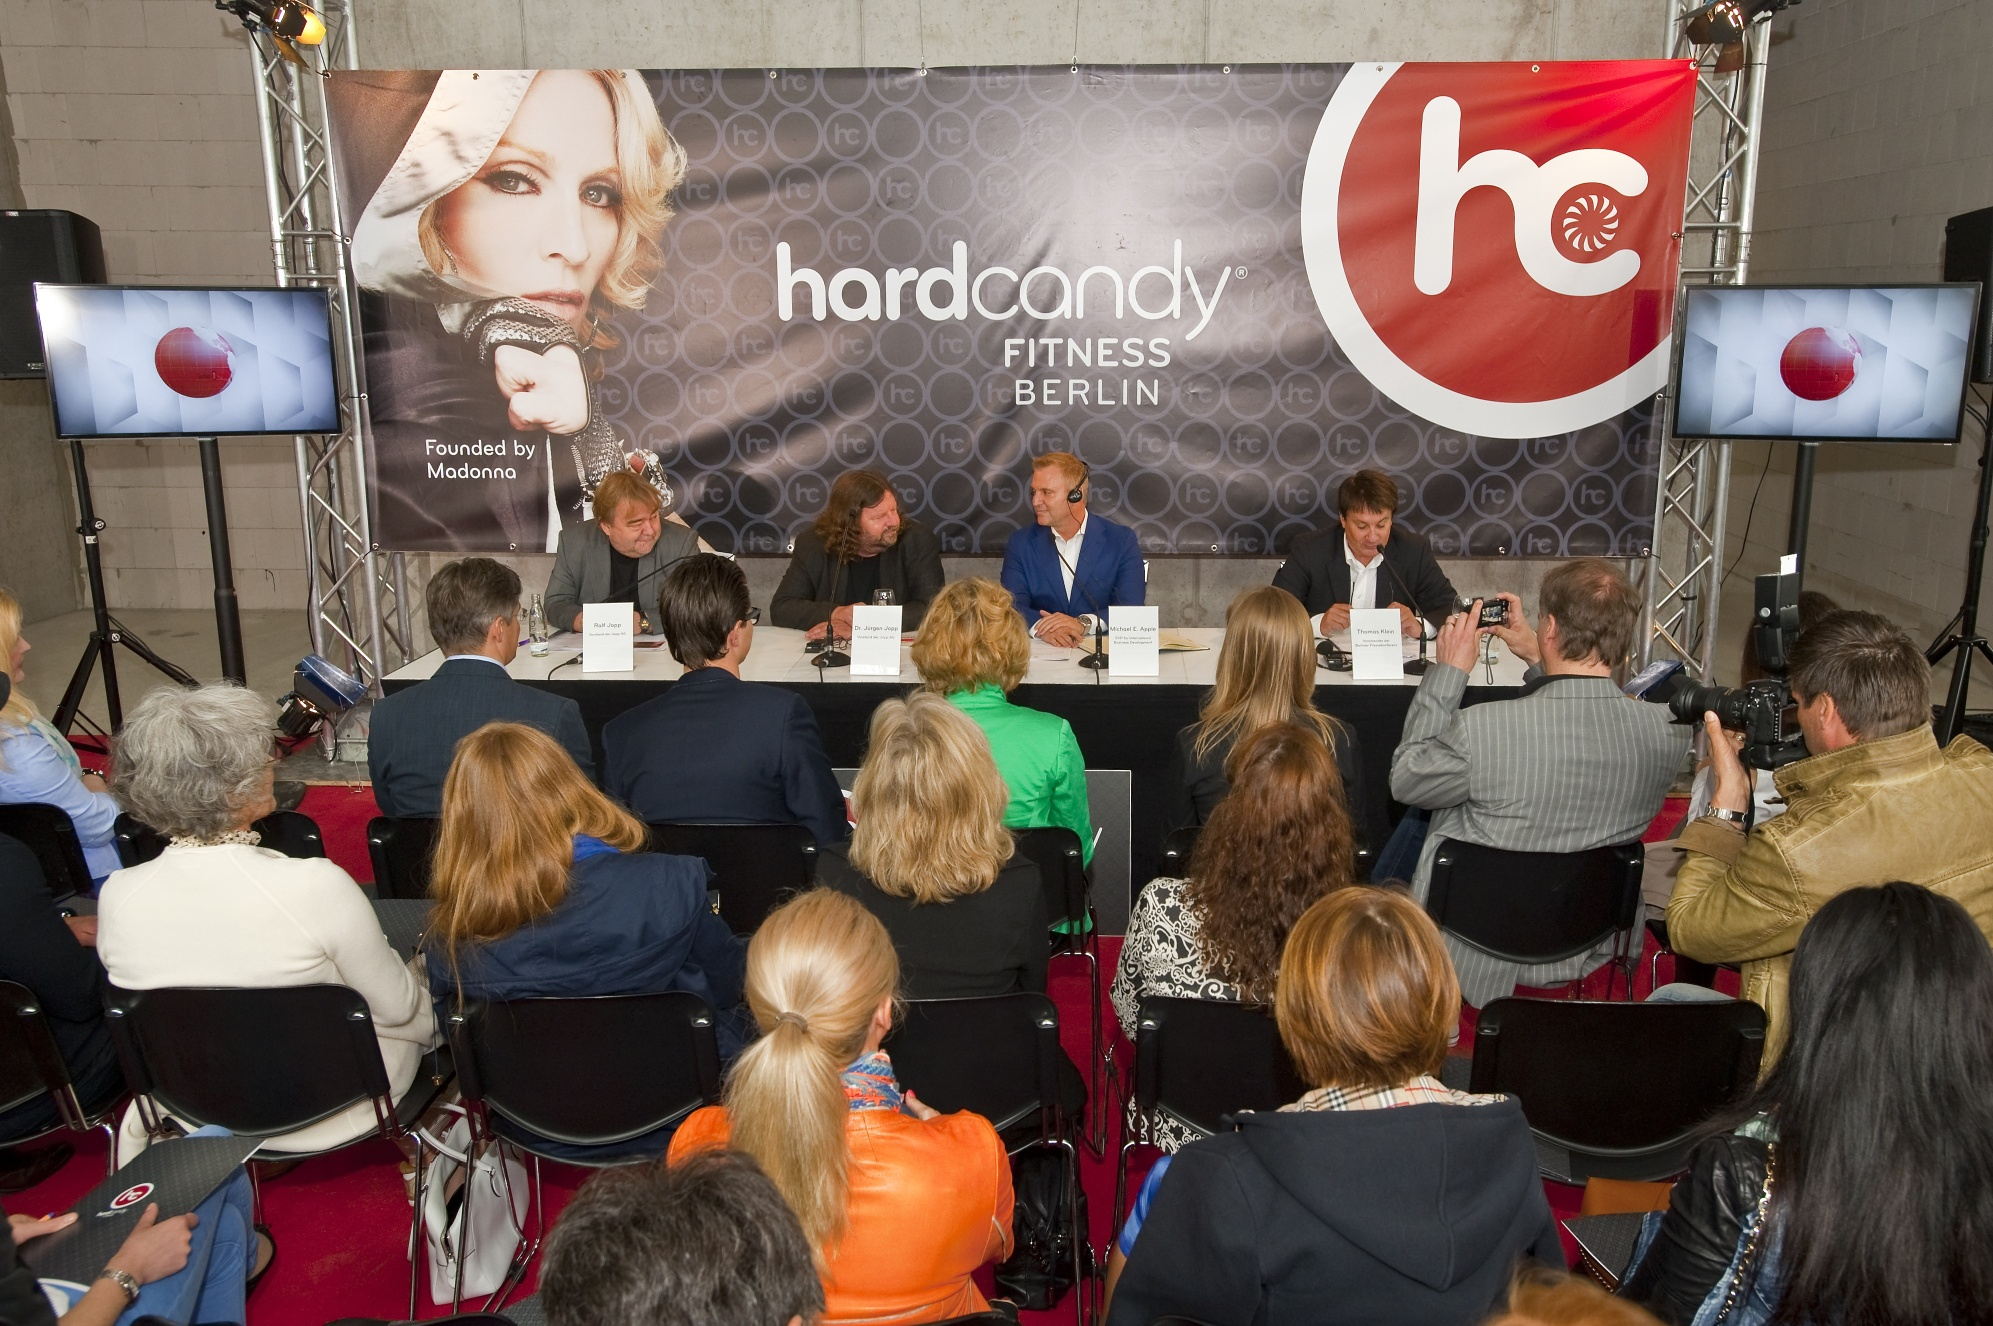 20130609-news-madonna-hard-candy-fitness-berlin-press-conference-01